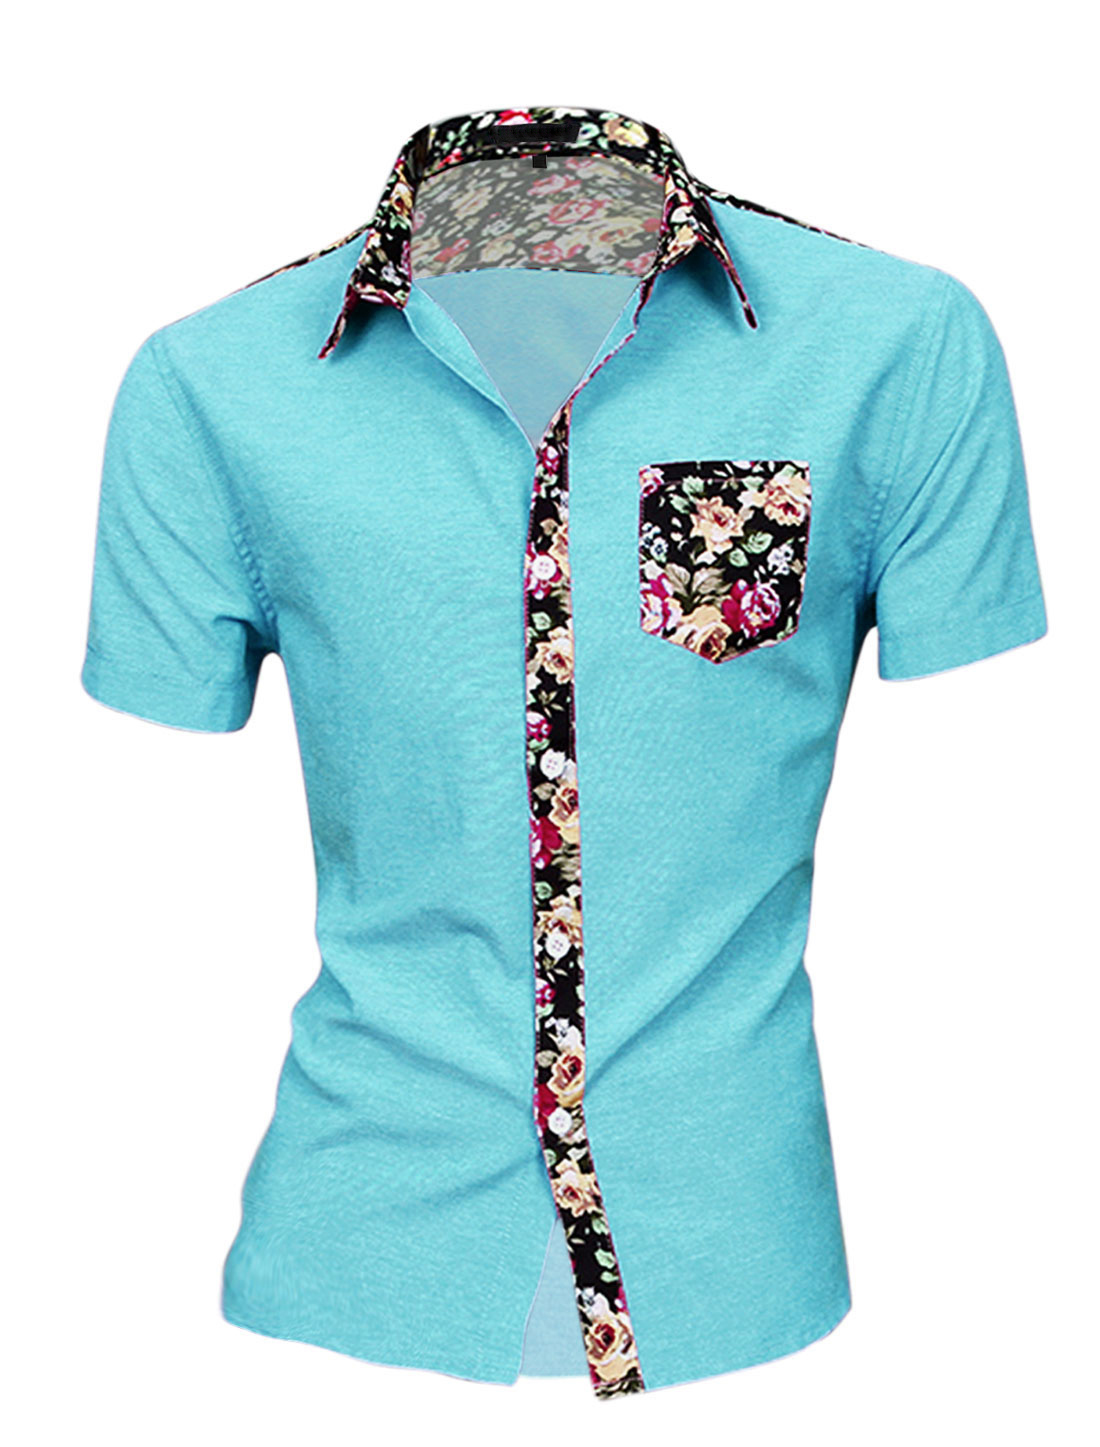 Men Short Sleeve Floral Pattern Slim Fit Pocket Shirts Sky Blue L